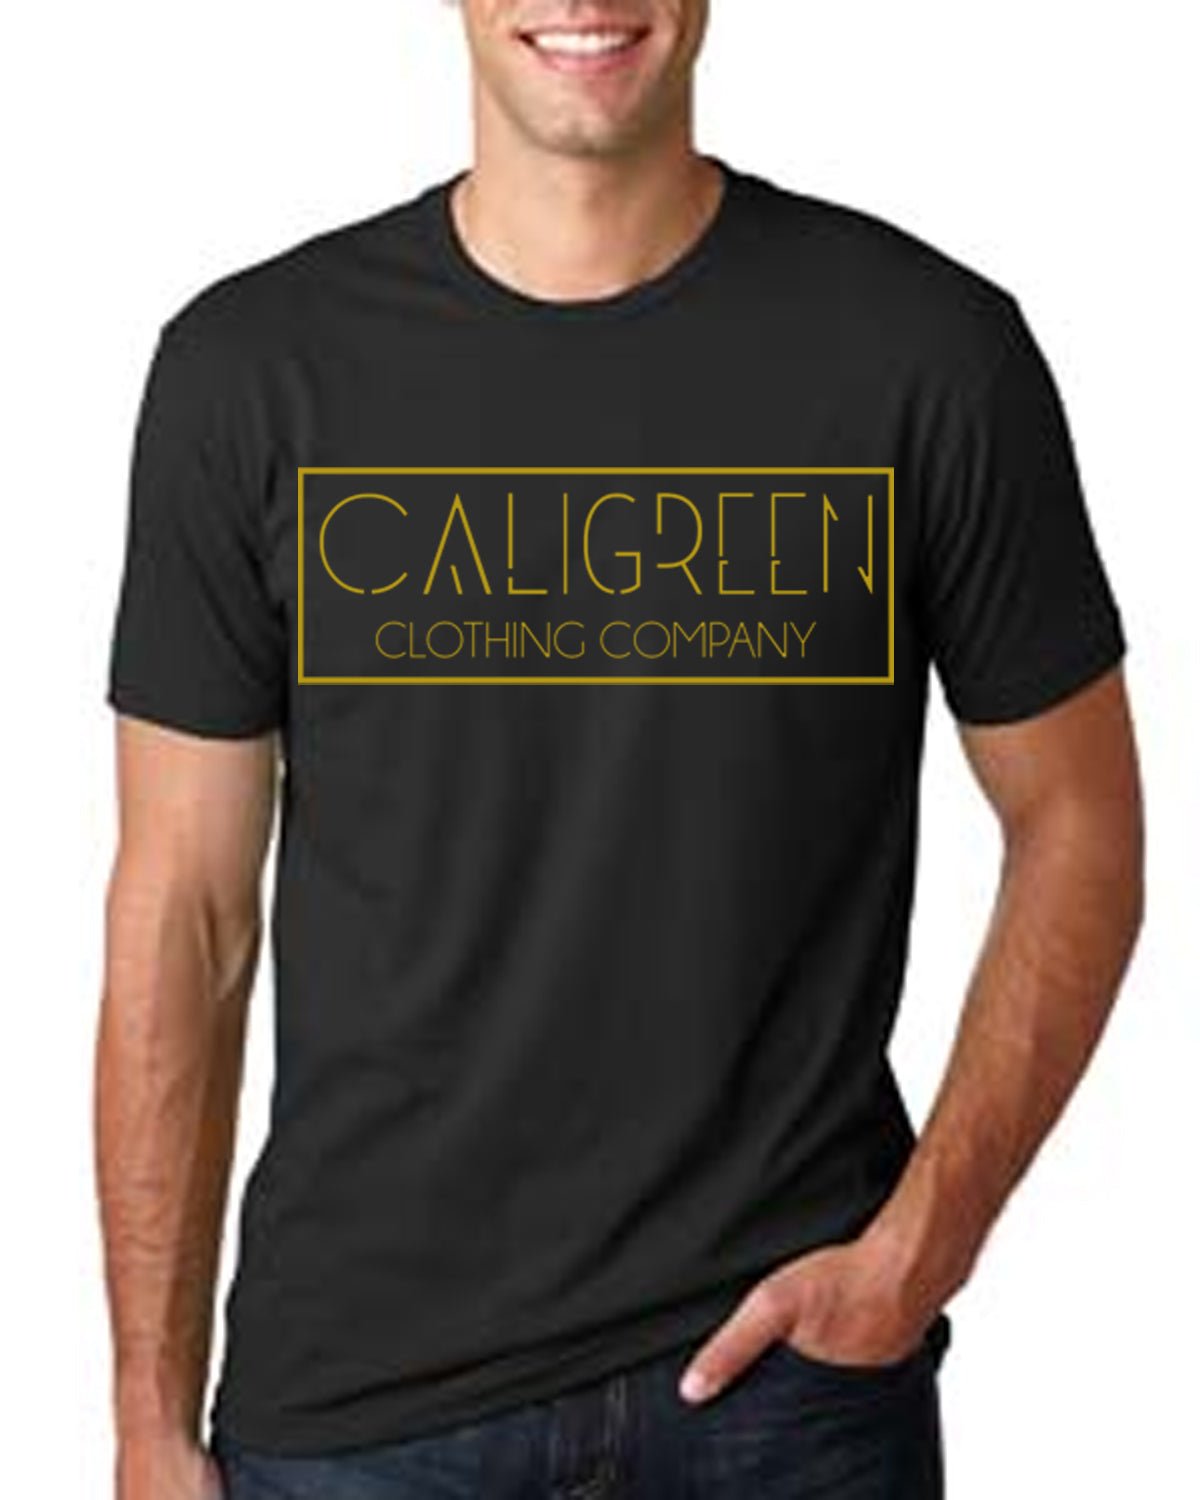 Caligreen Classic Black/Gold T-Shirt